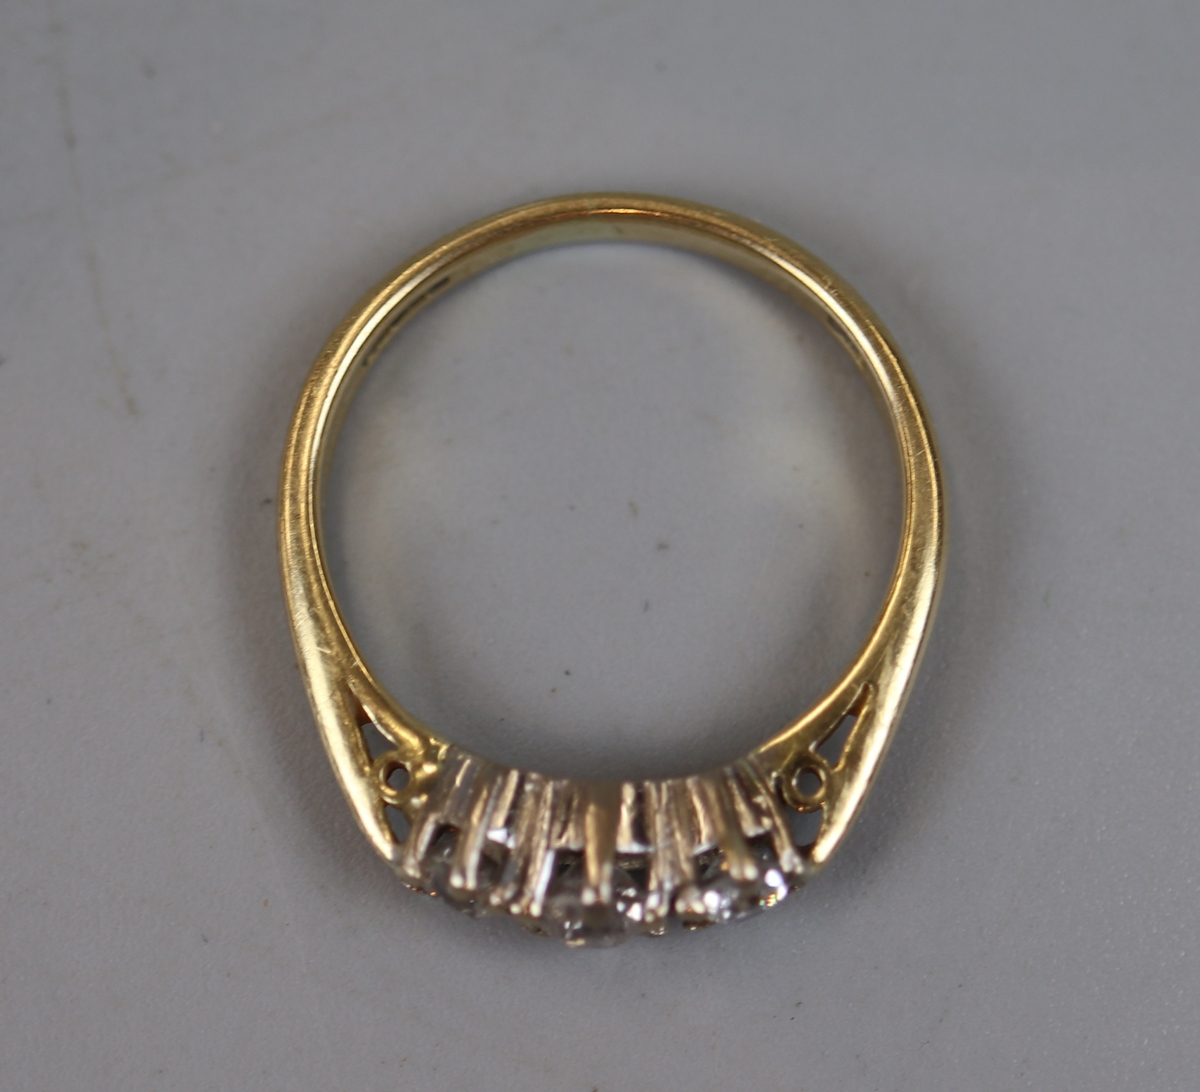 18ct gold 3 stone diamond ring (size N½) - Image 2 of 2